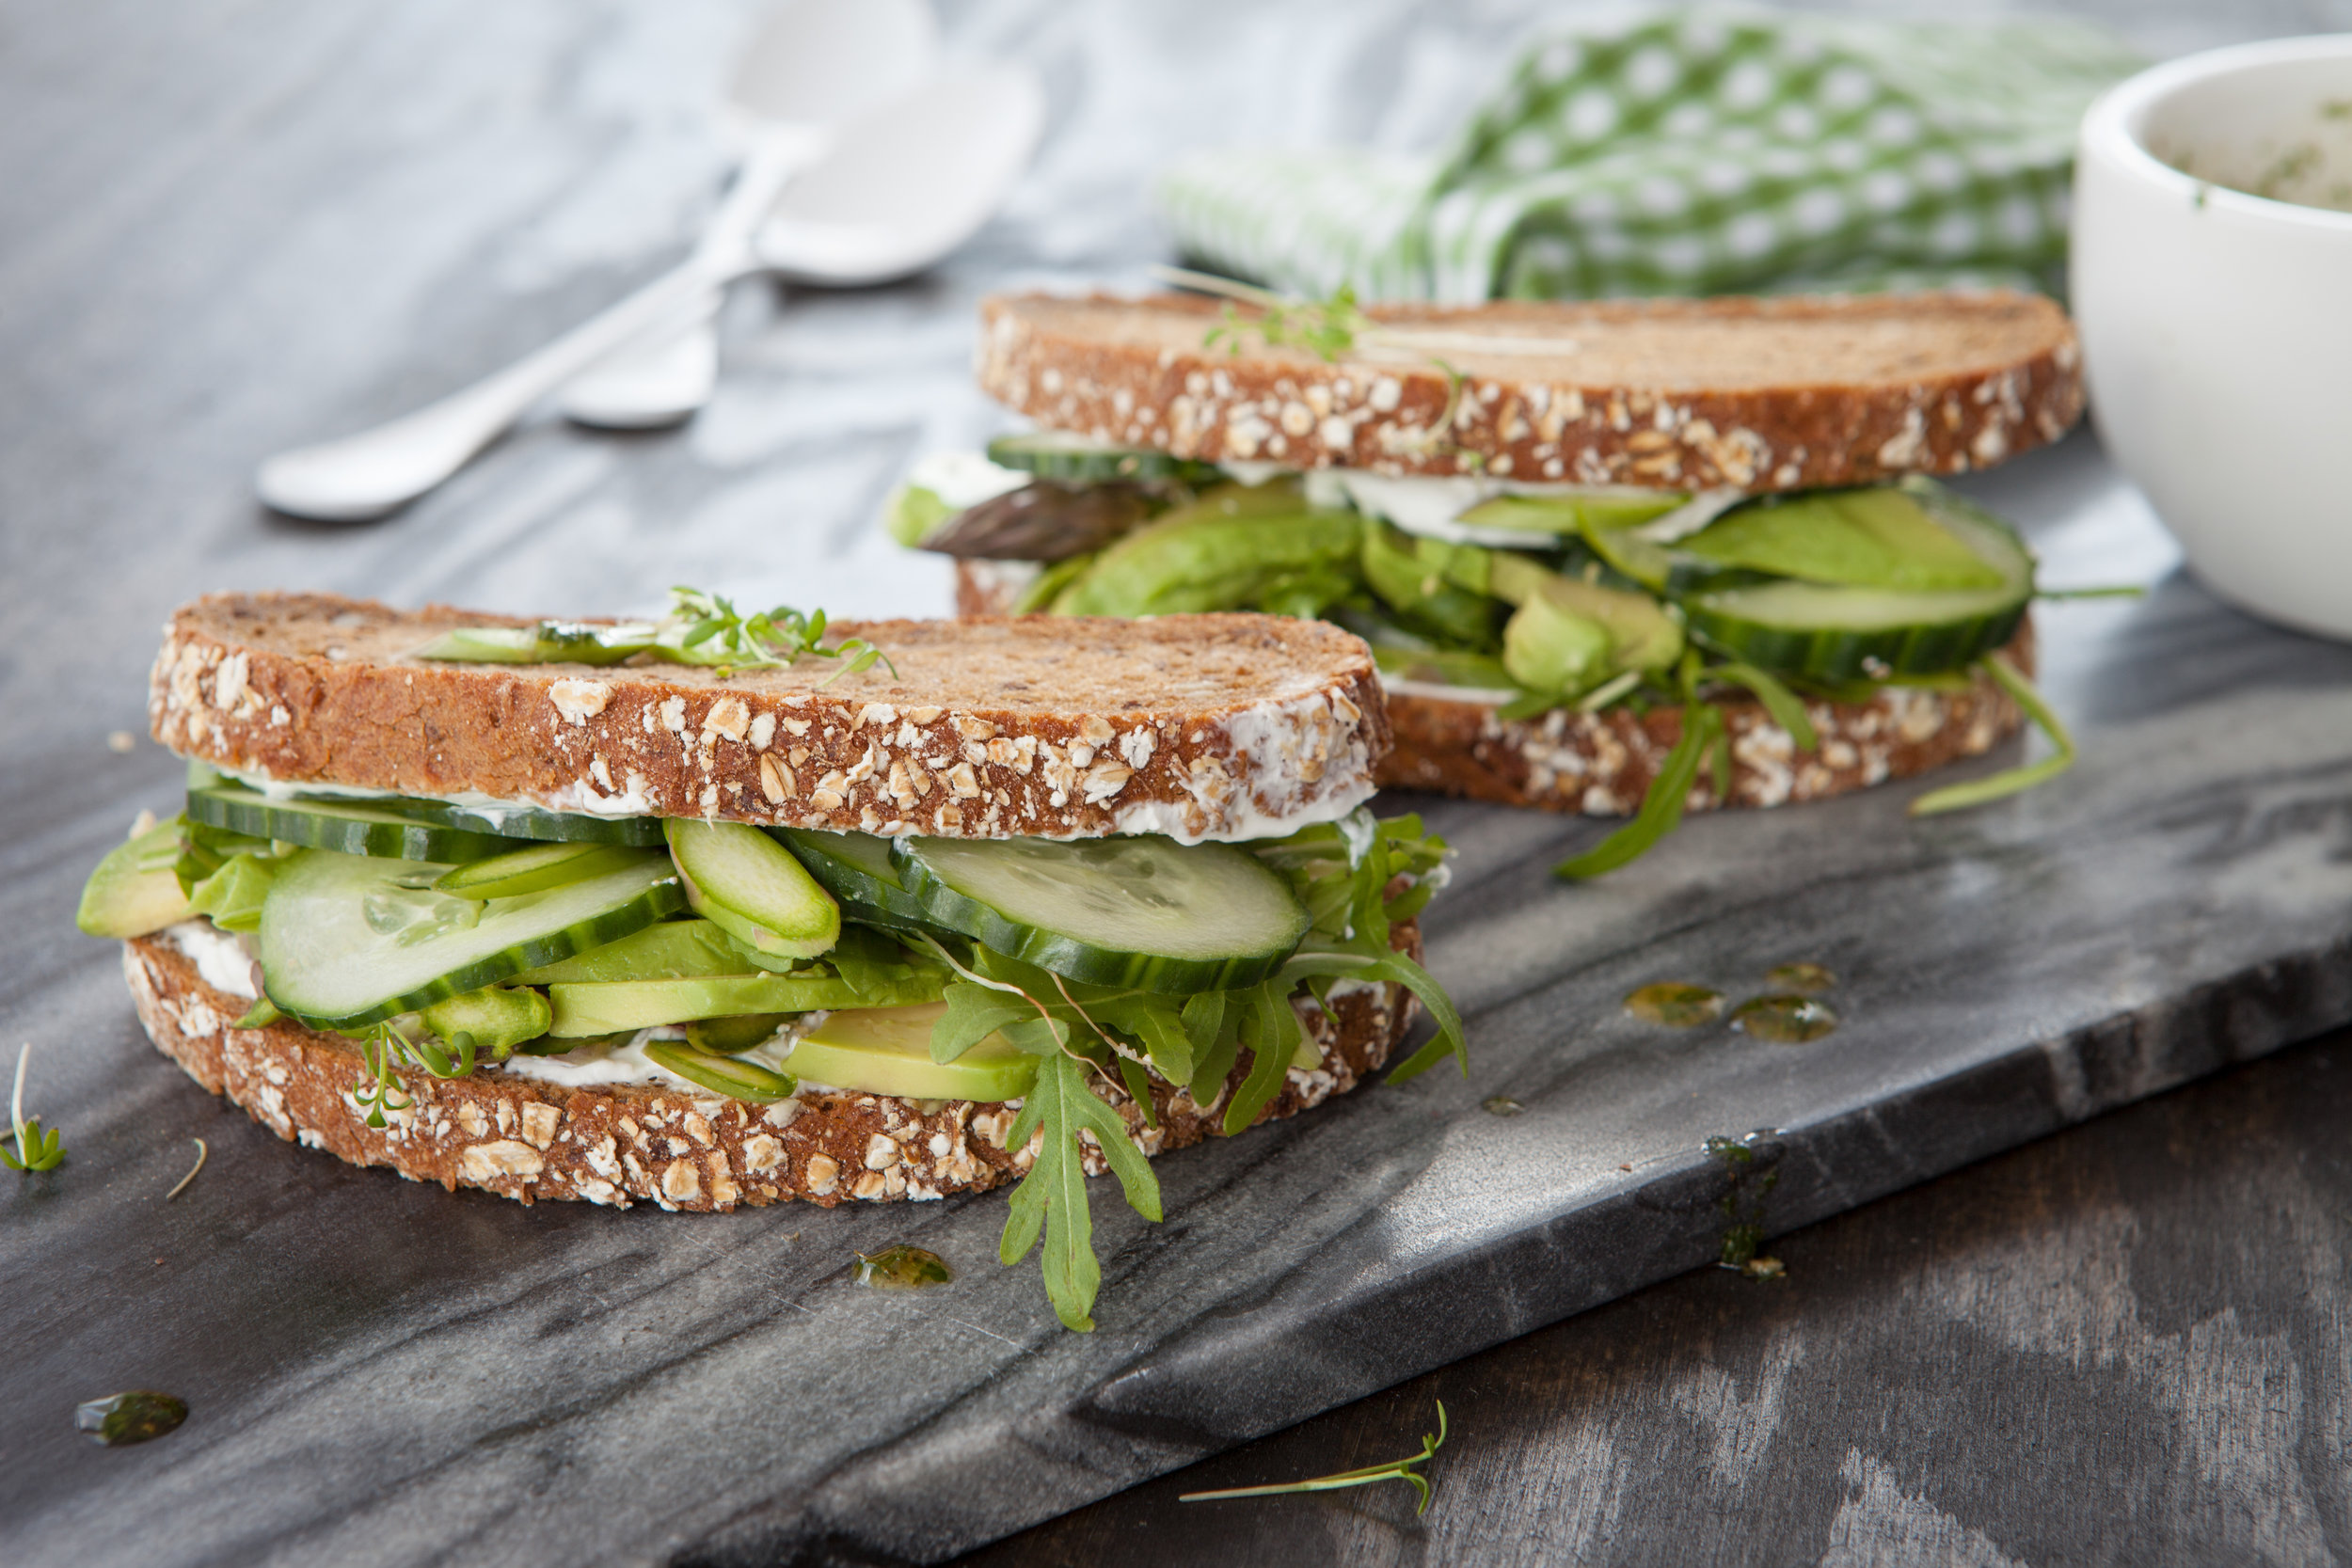 vegan-sandwich-with-avocado-PE67Q2A.jpg